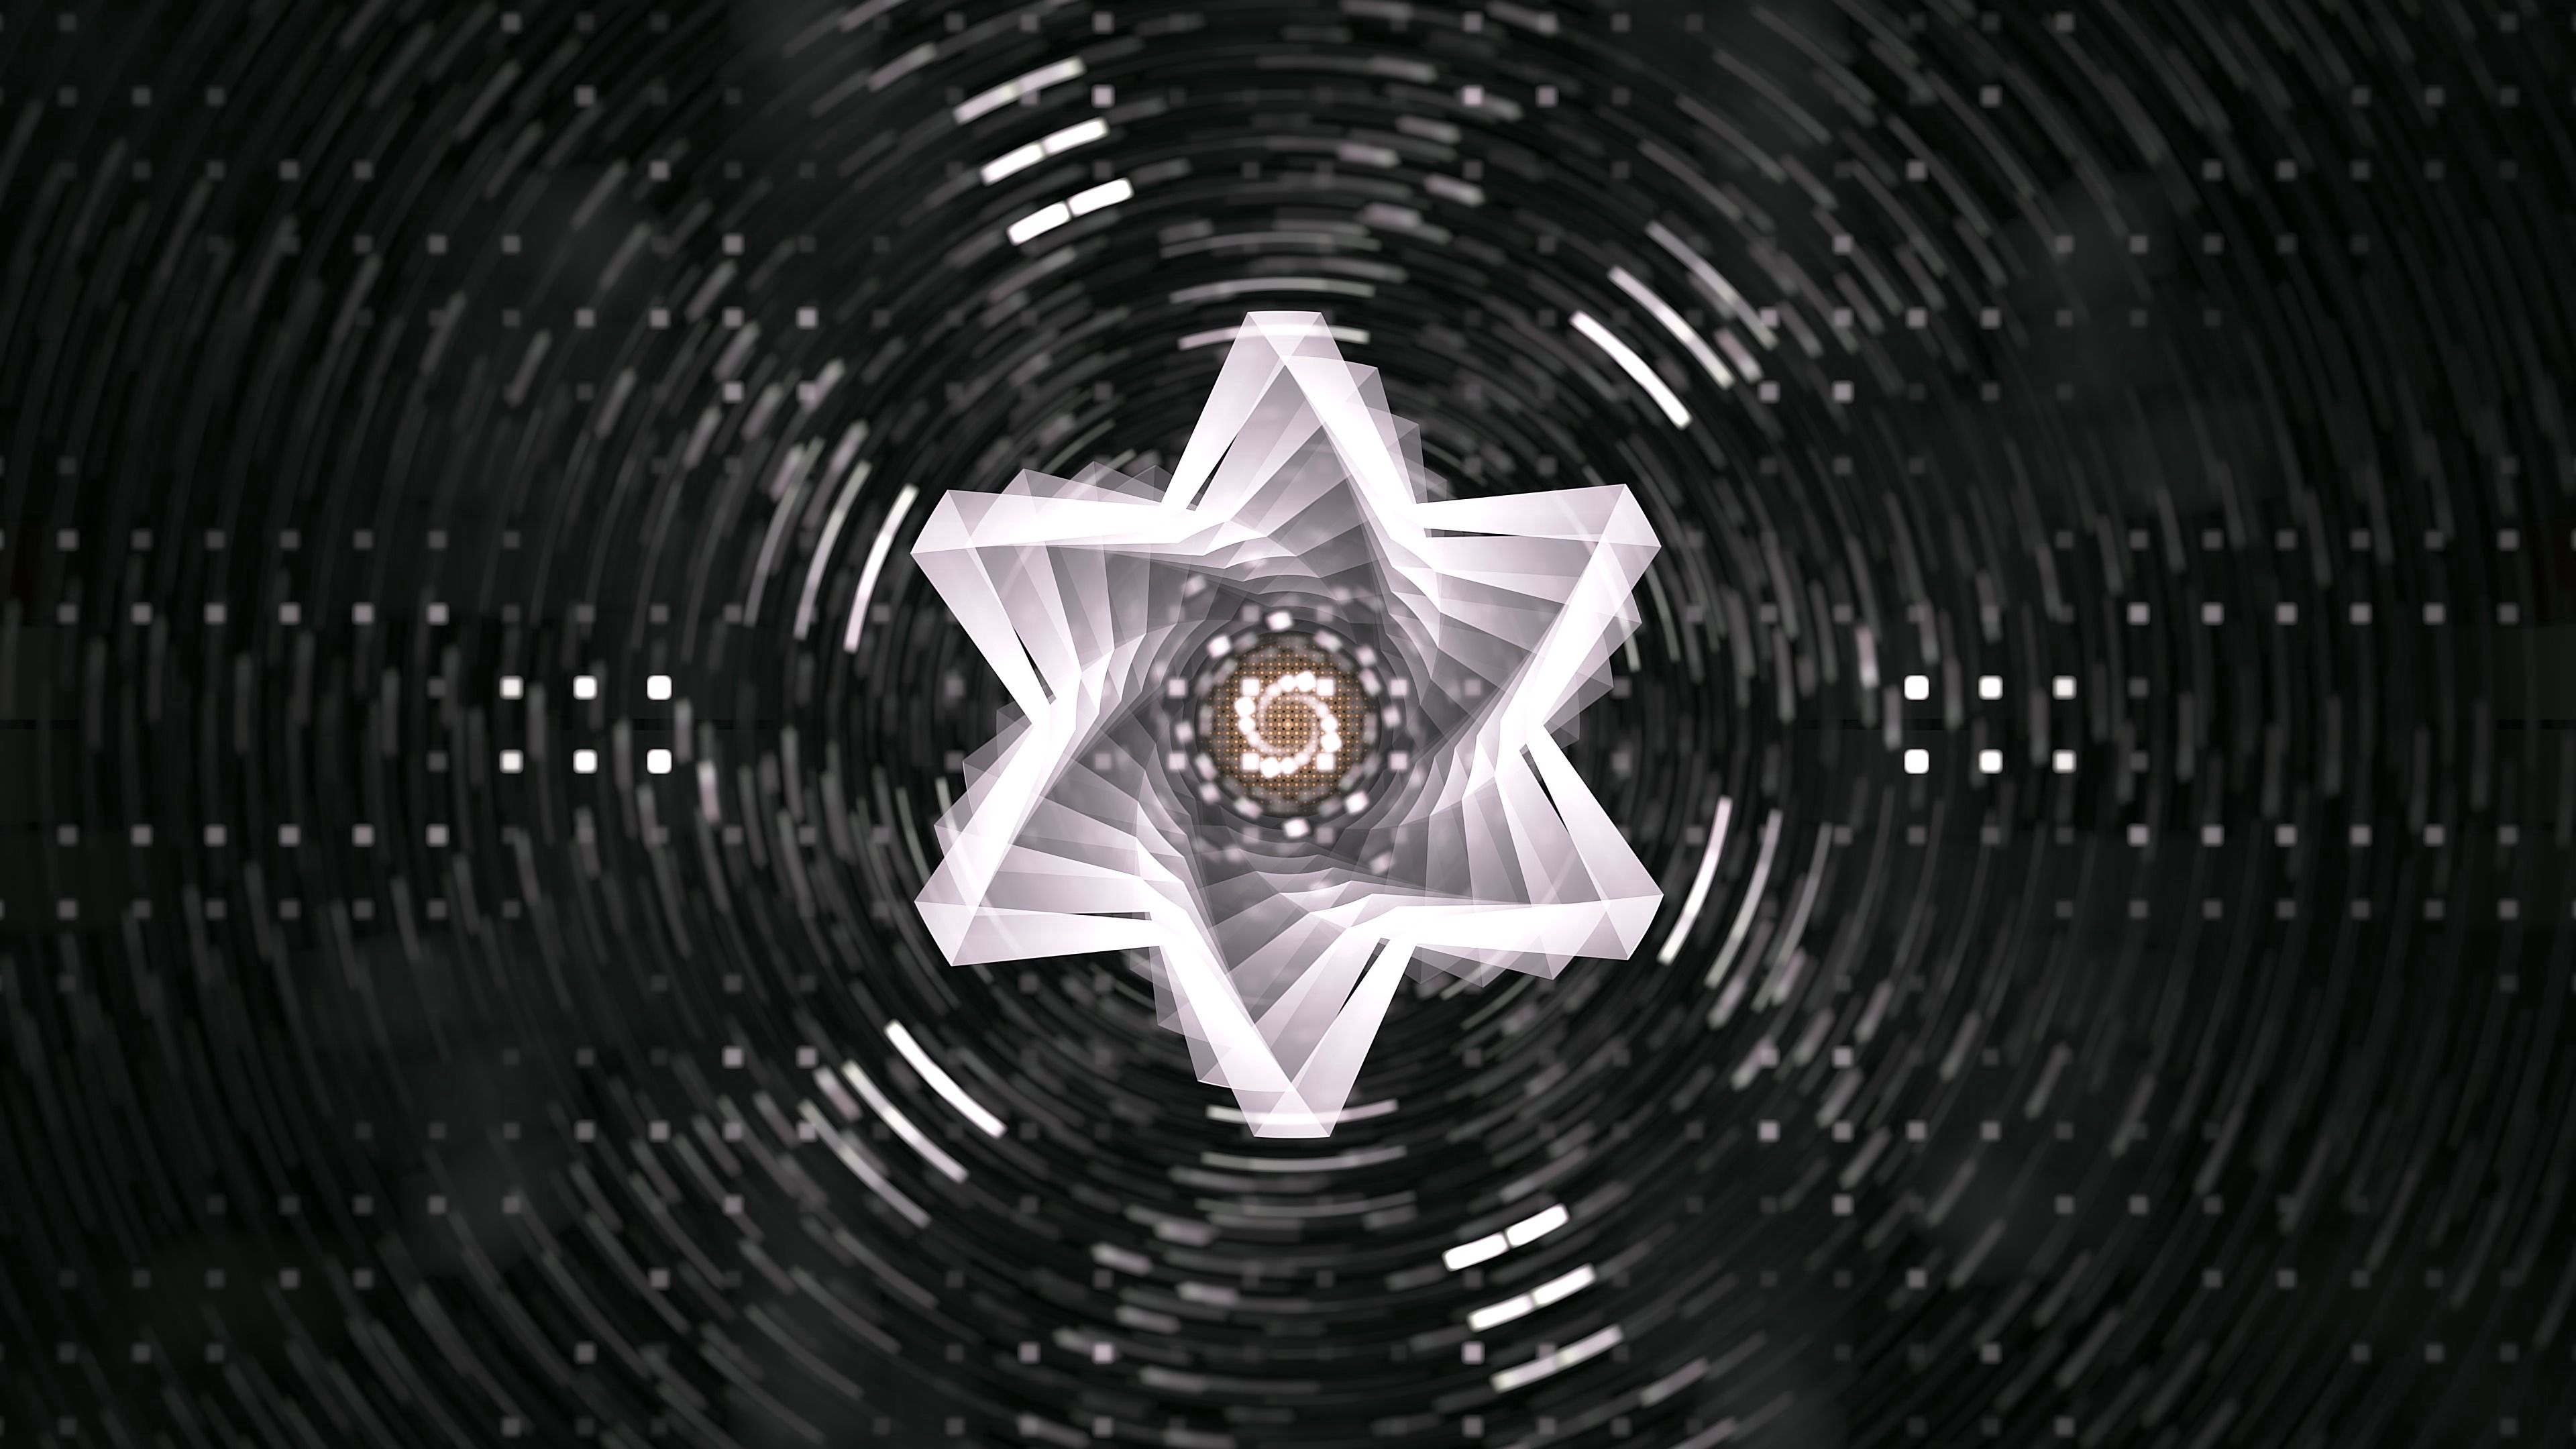 3840x2160 Wallpaper star, fractal, swirling, rotation, abstraction